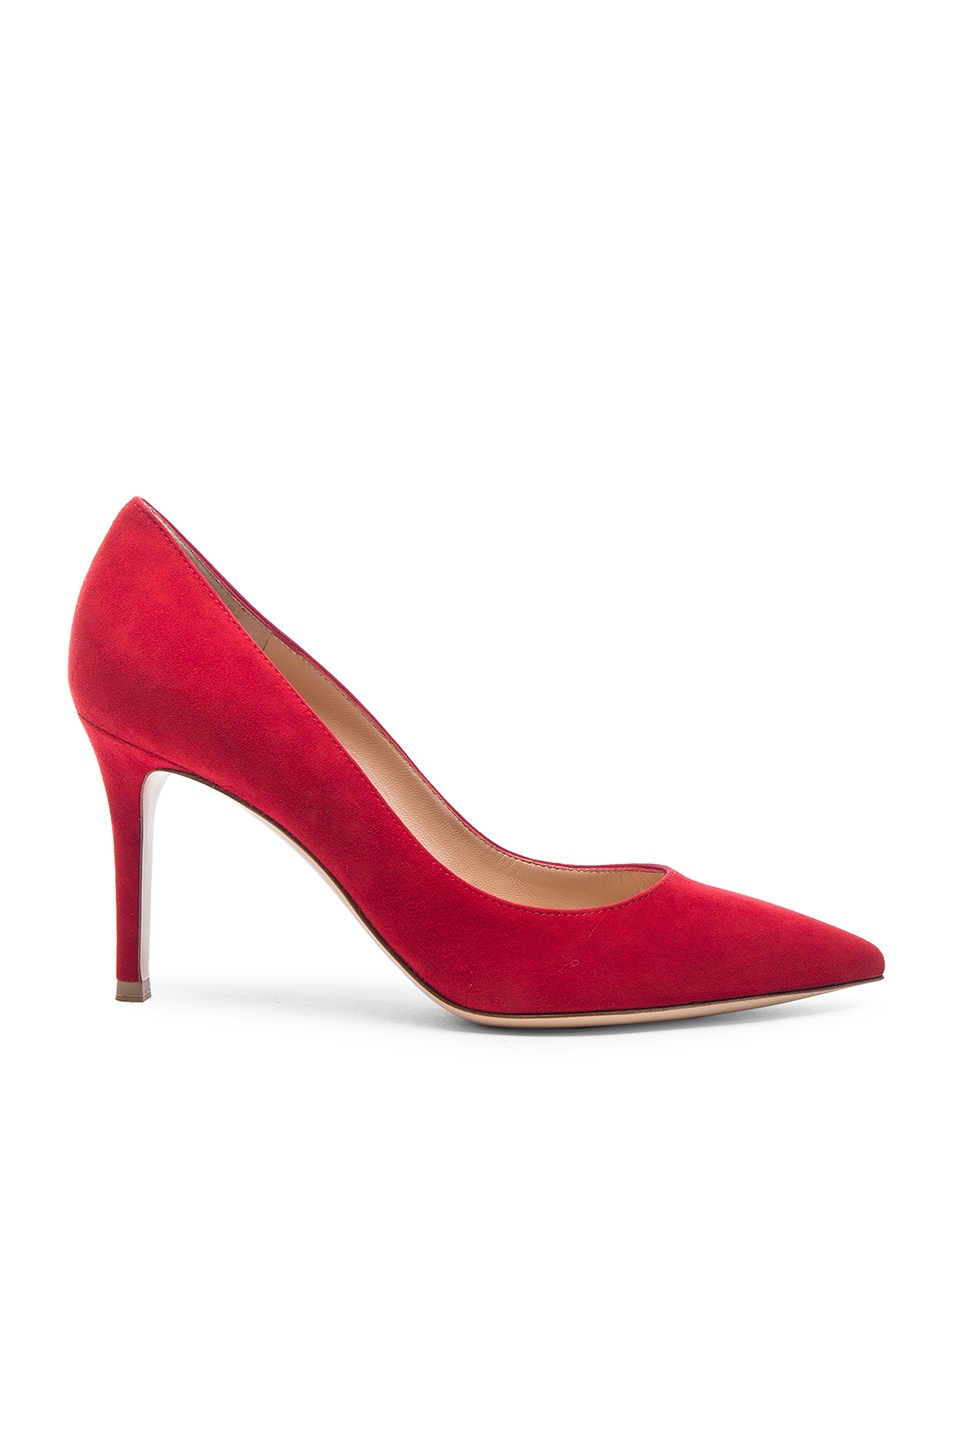 Image 1 of Gianvito Rossi Suede Gianvito Pumps in Tabasco Red